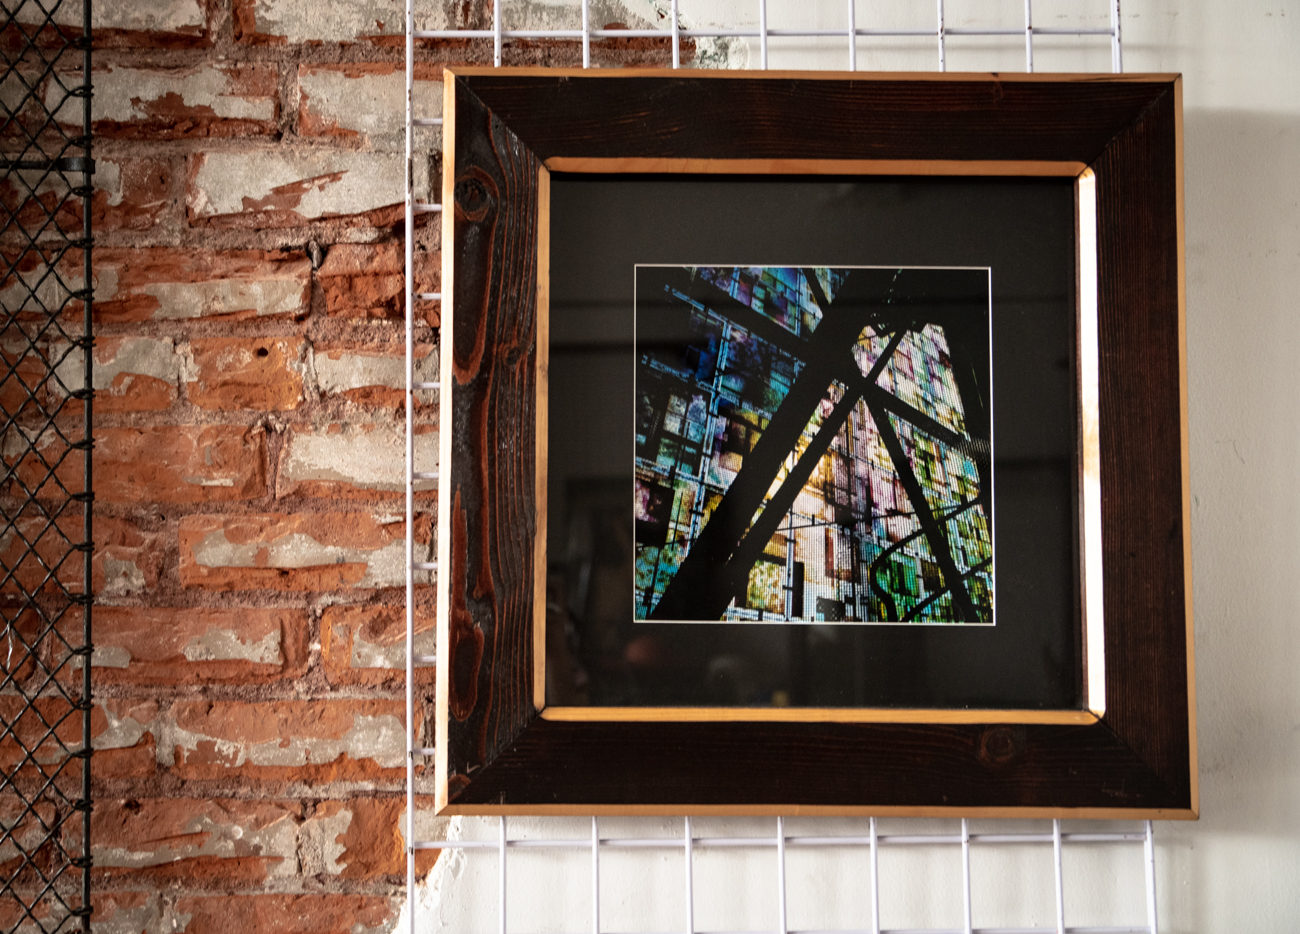 Ryan Hill with ImageNationS Photography is a Newport-based photographer who uses his carpentry skills to design and create his own unique framing. His style ranges from classic black & white cityscapes, to images inspired by abstract expressionism. / Image: Melissa Sliney // Published: 6.26.19